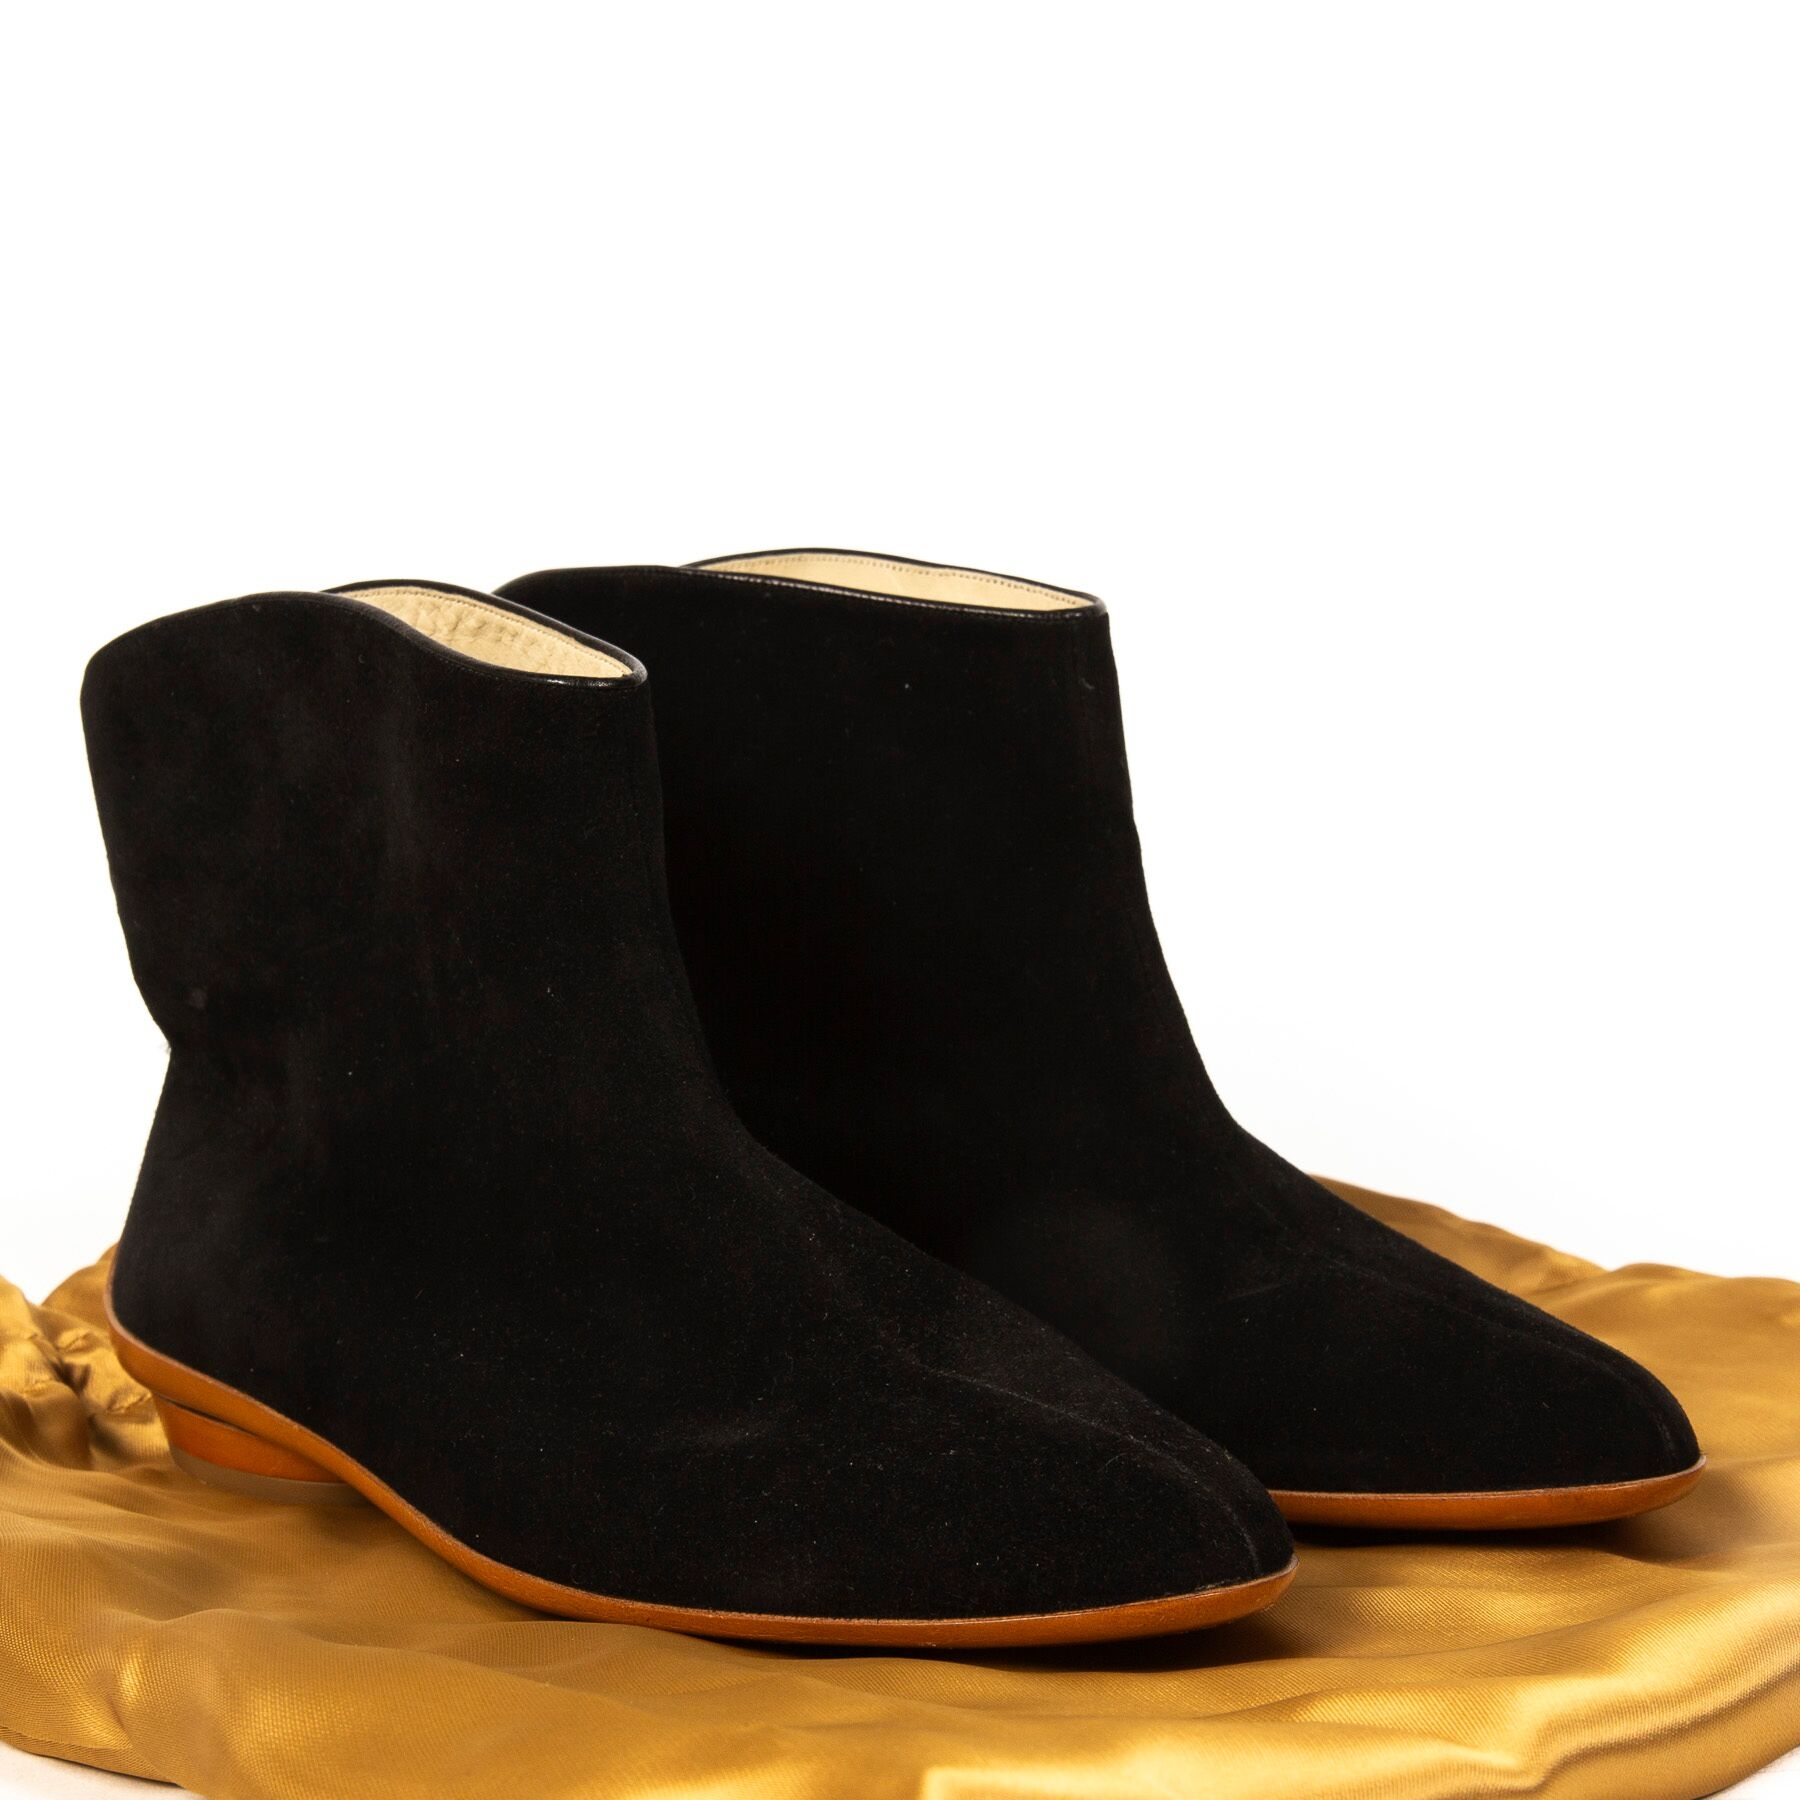 Buy authentic secondhand Salvatore Farragamo boots at Labellov vintage webshop for the lowest price.